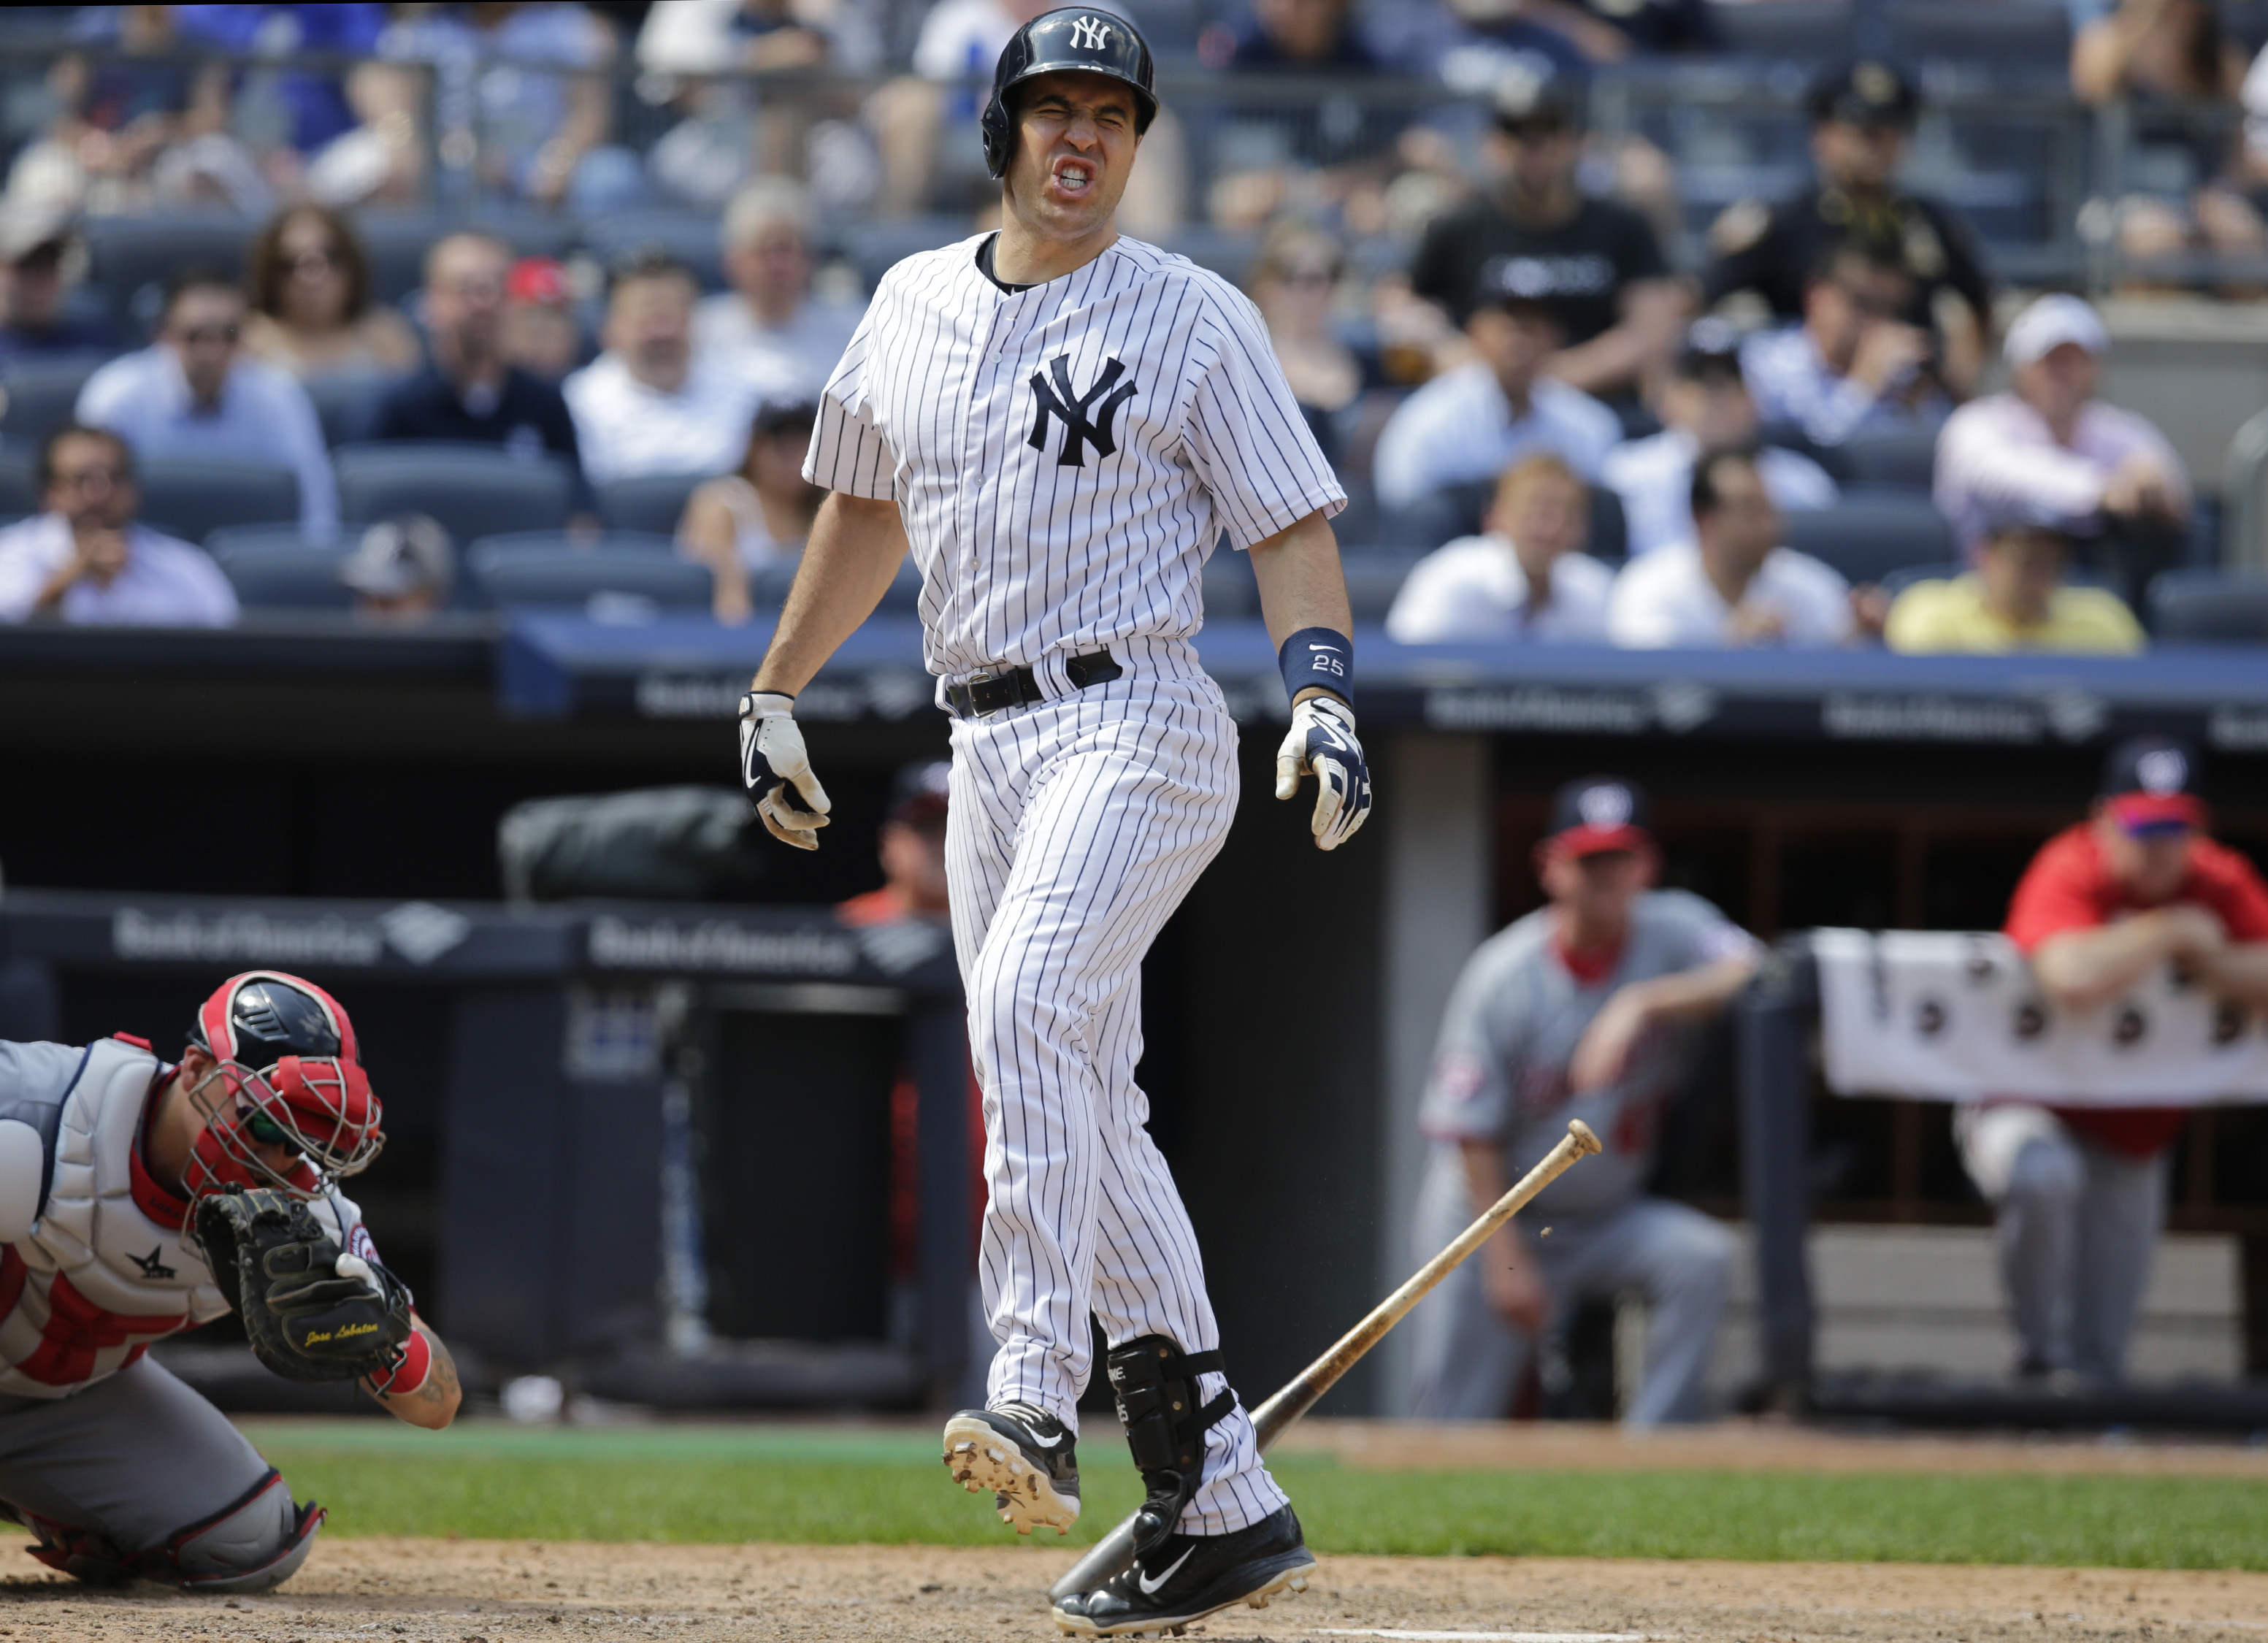 New York Yankees' Mark Teixeira reacts after fouling a ball off his foot during a baseball game against the Washington Nationals, Wednesday, June 10, 2015 in New York.  (AP Photo/Kathy Willens)